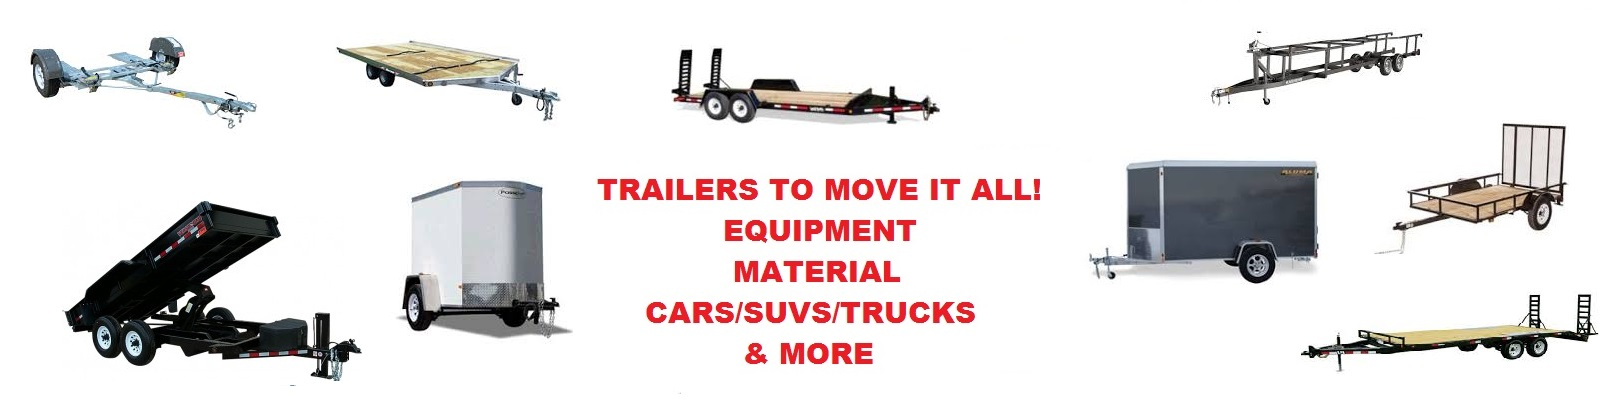 Trailer rentals in Twin Cities Metro Area